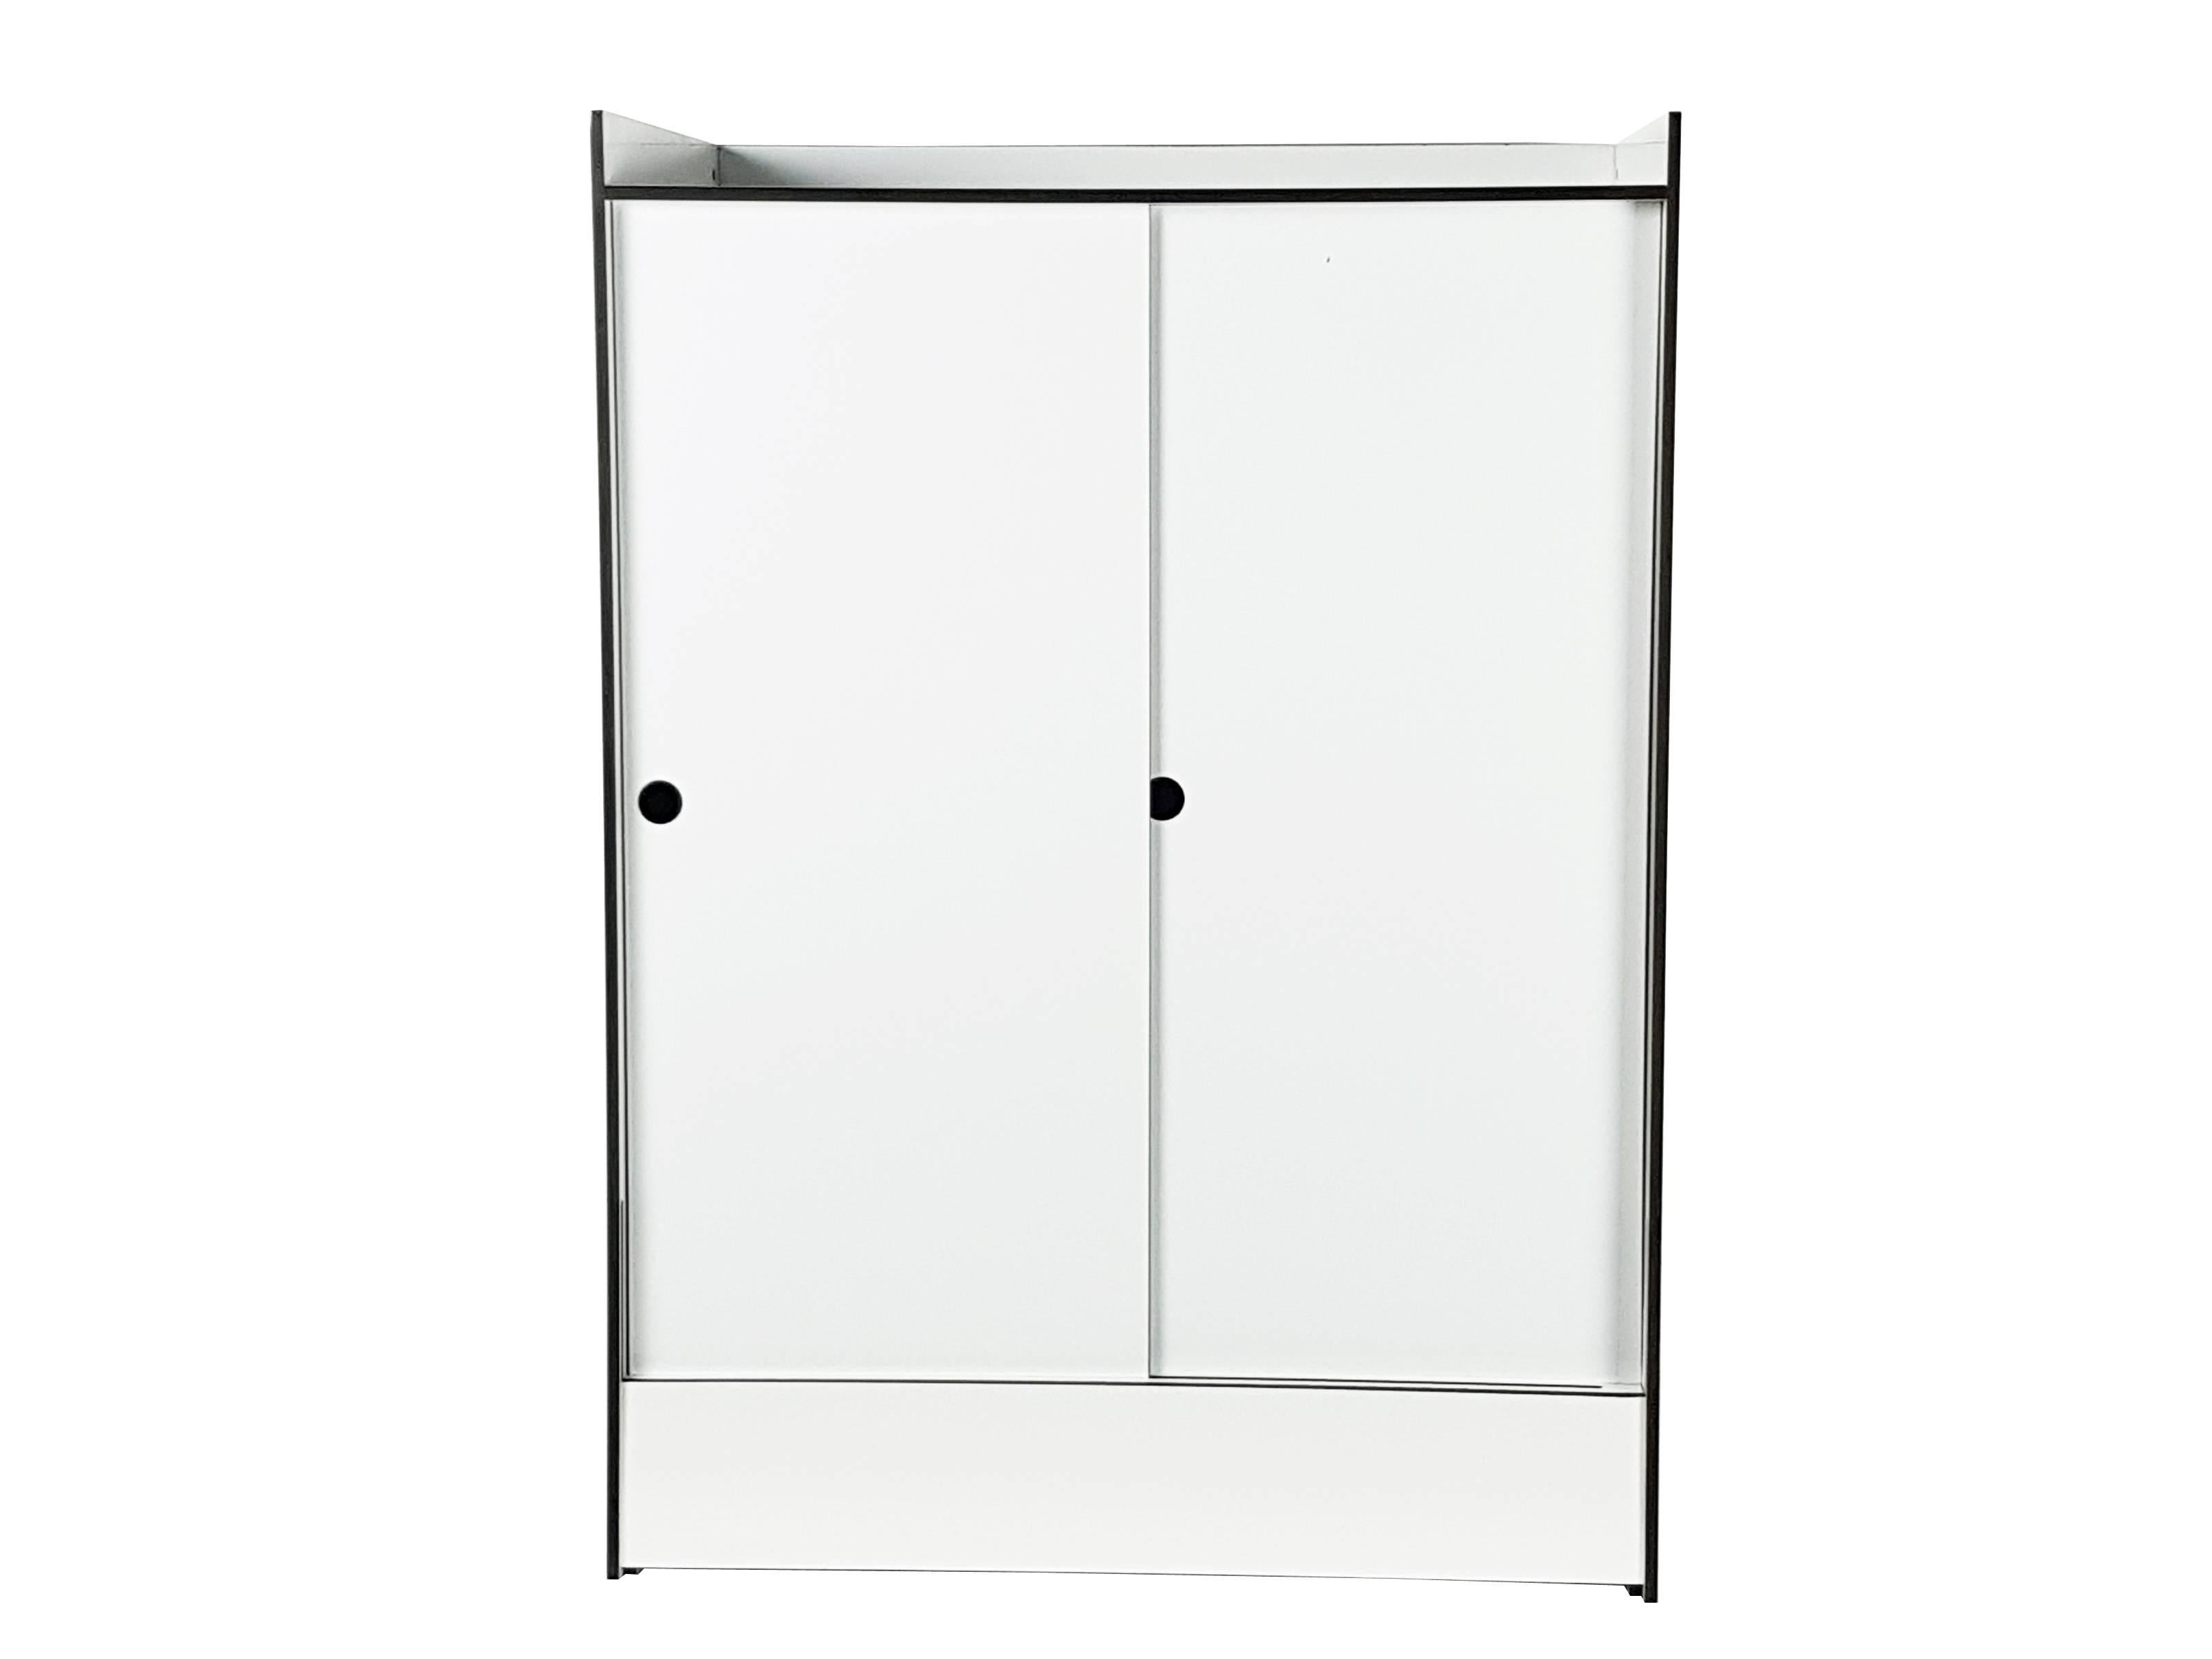 Italian White Laminated Plastic Storage Unit With Shelves And Sliding Doors  For La For Sale At 1stdibs